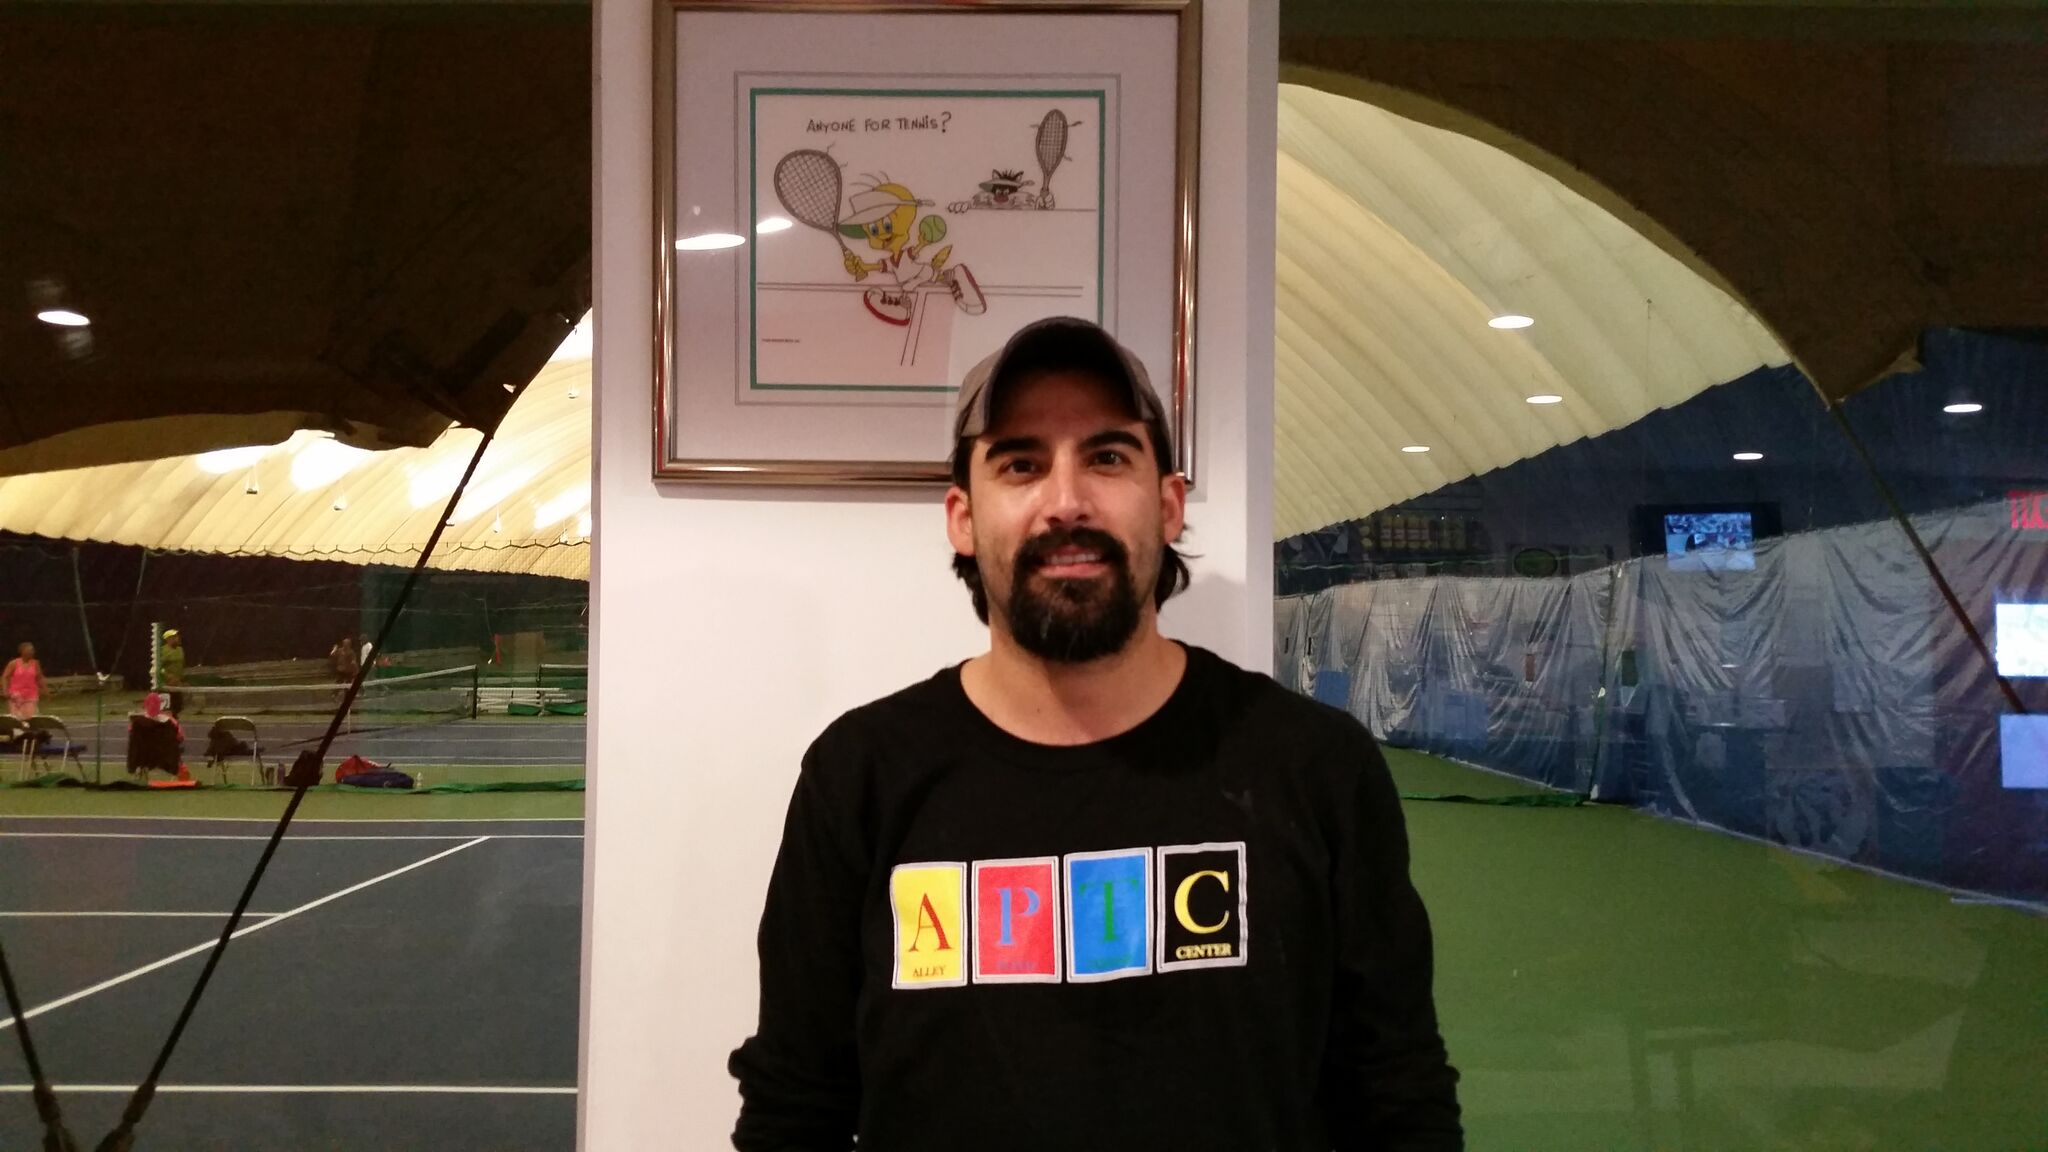 Jason Vinoles, APTC Teaching Staff :  Jason is a new addition to our staff here at  Alley Pond Tennis Center . He joined our staff in March 2016. Jason is a certified PTR Teaching Professional who speaks English and fluent Spanish. He graduated from Boston University Class of 2003 and was captain of the Boston University Men's Tennis Team. Jason is originally from New York (Long Island) and as a junior trained at Port Washington Tennis Academy. We welcome Jason to our team at APTC and in a short time he is one of our most popular coaches.